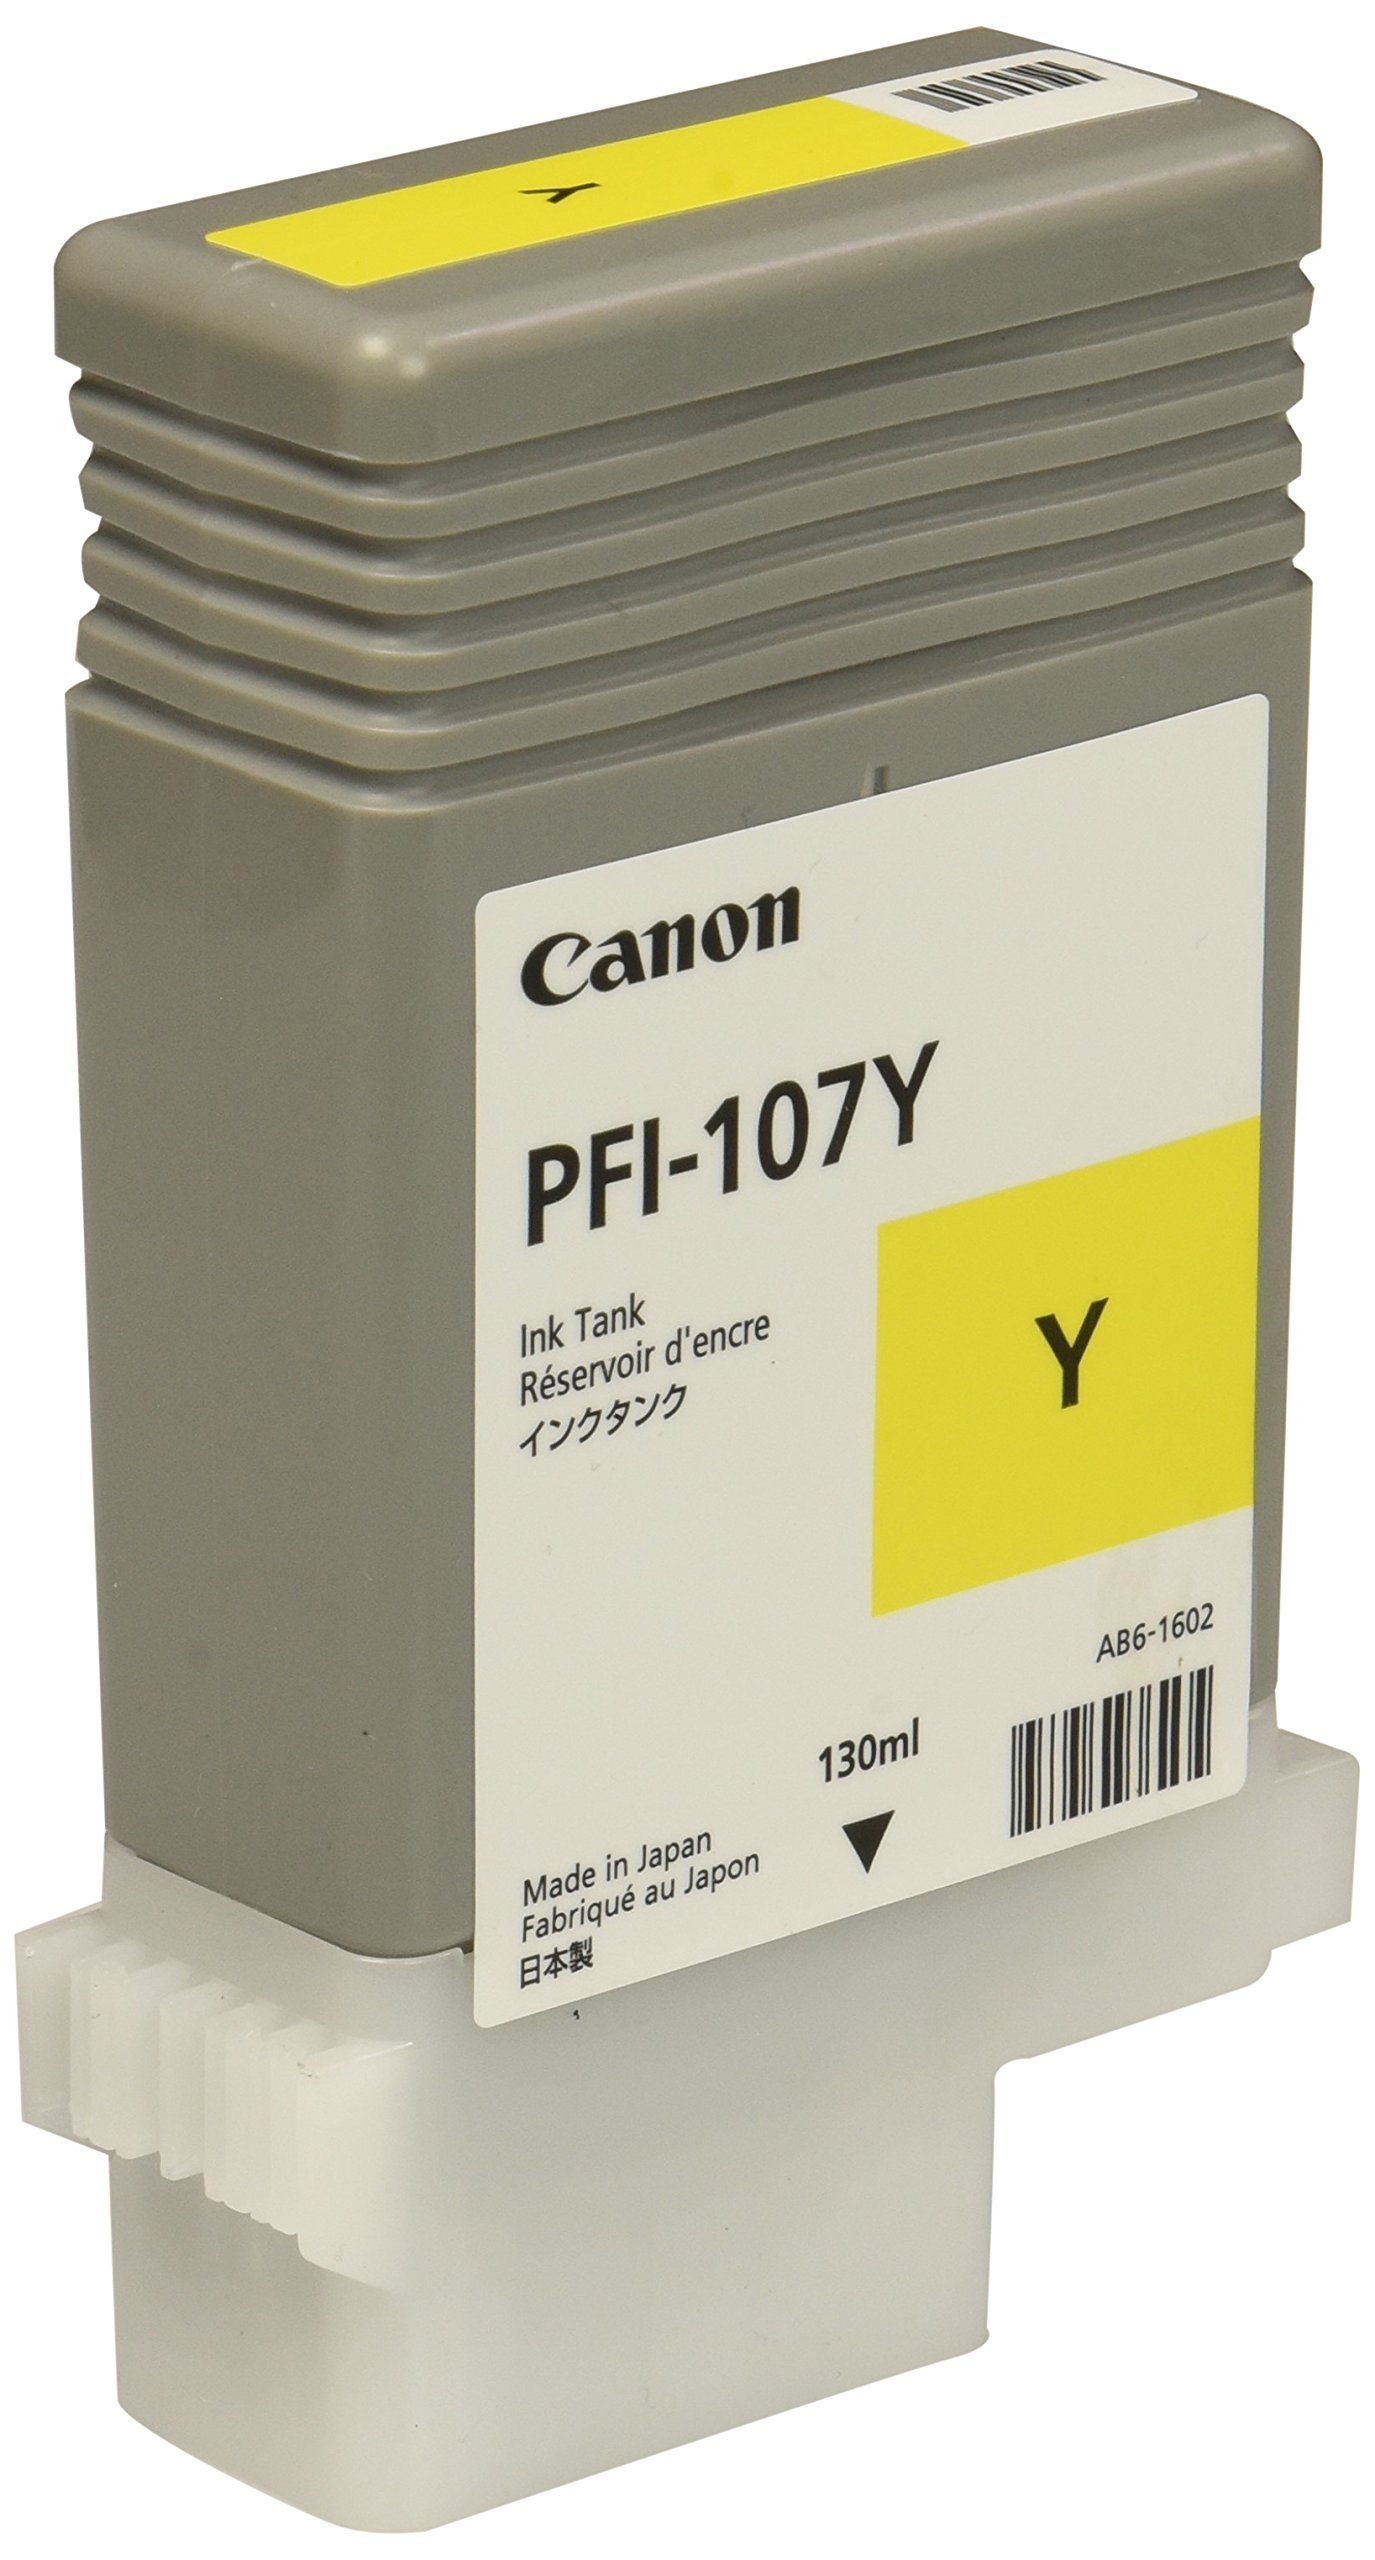 Canon PFI-107 130ml Ink Tank for Canon iPF680/685/780/785, Yellow